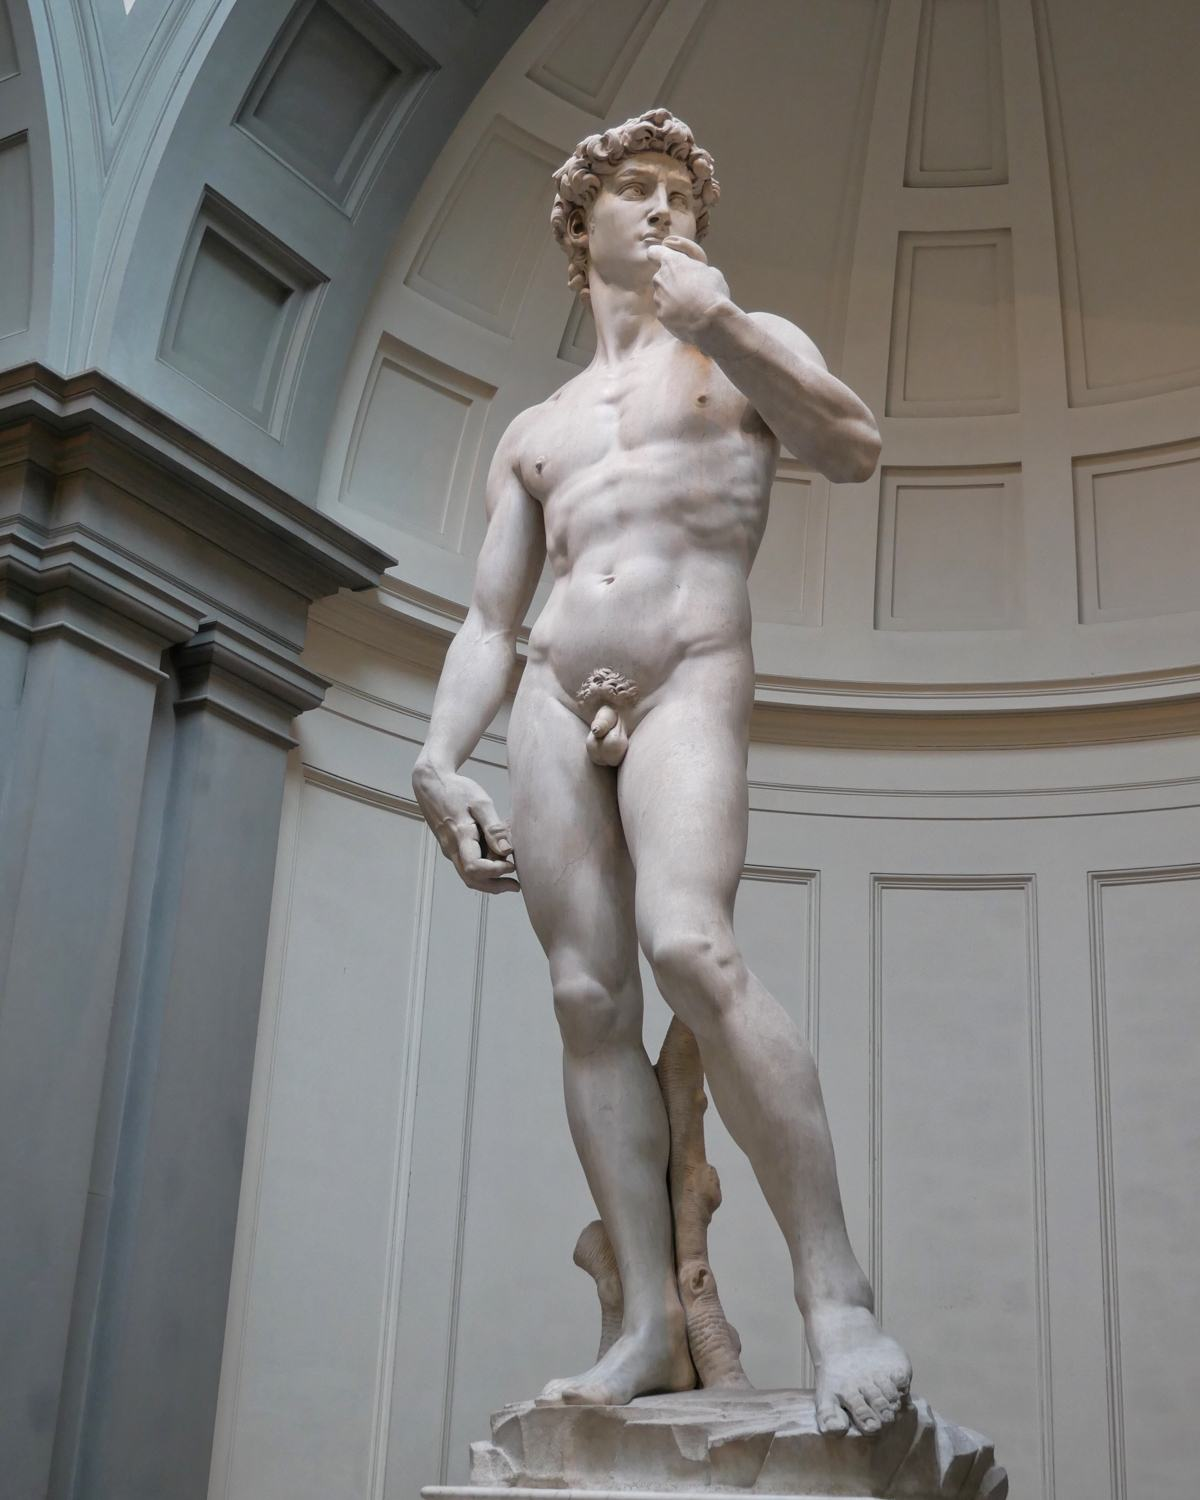 David at Galleria dell'Accademia in Florence, Italy Photo Heatheronhertravels.com